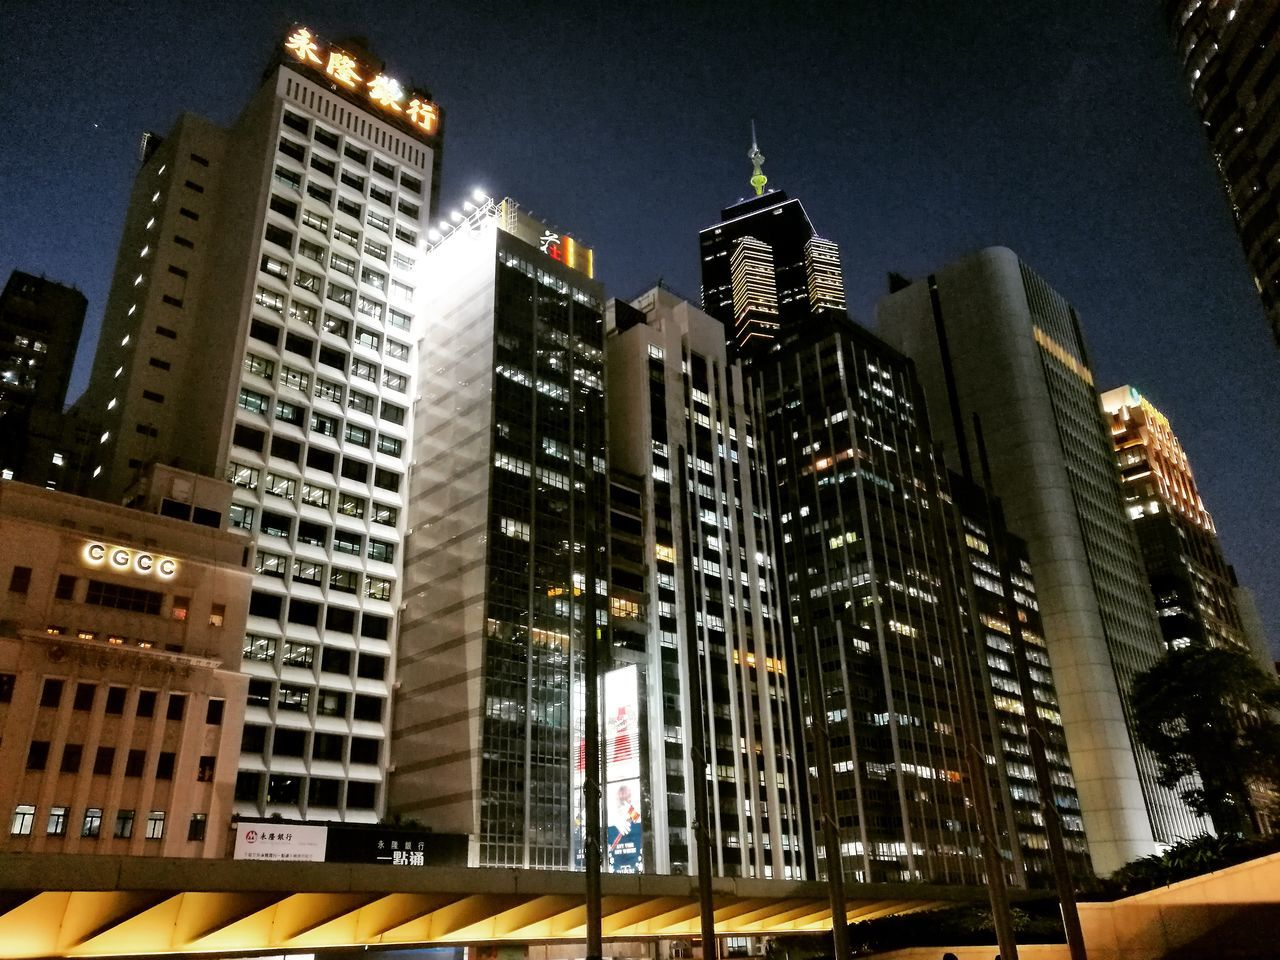 architecture, building exterior, skyscraper, city, urban, built structure, night, modern, no people, low angle view, illuminated, tall, cityscape, outdoors, sky